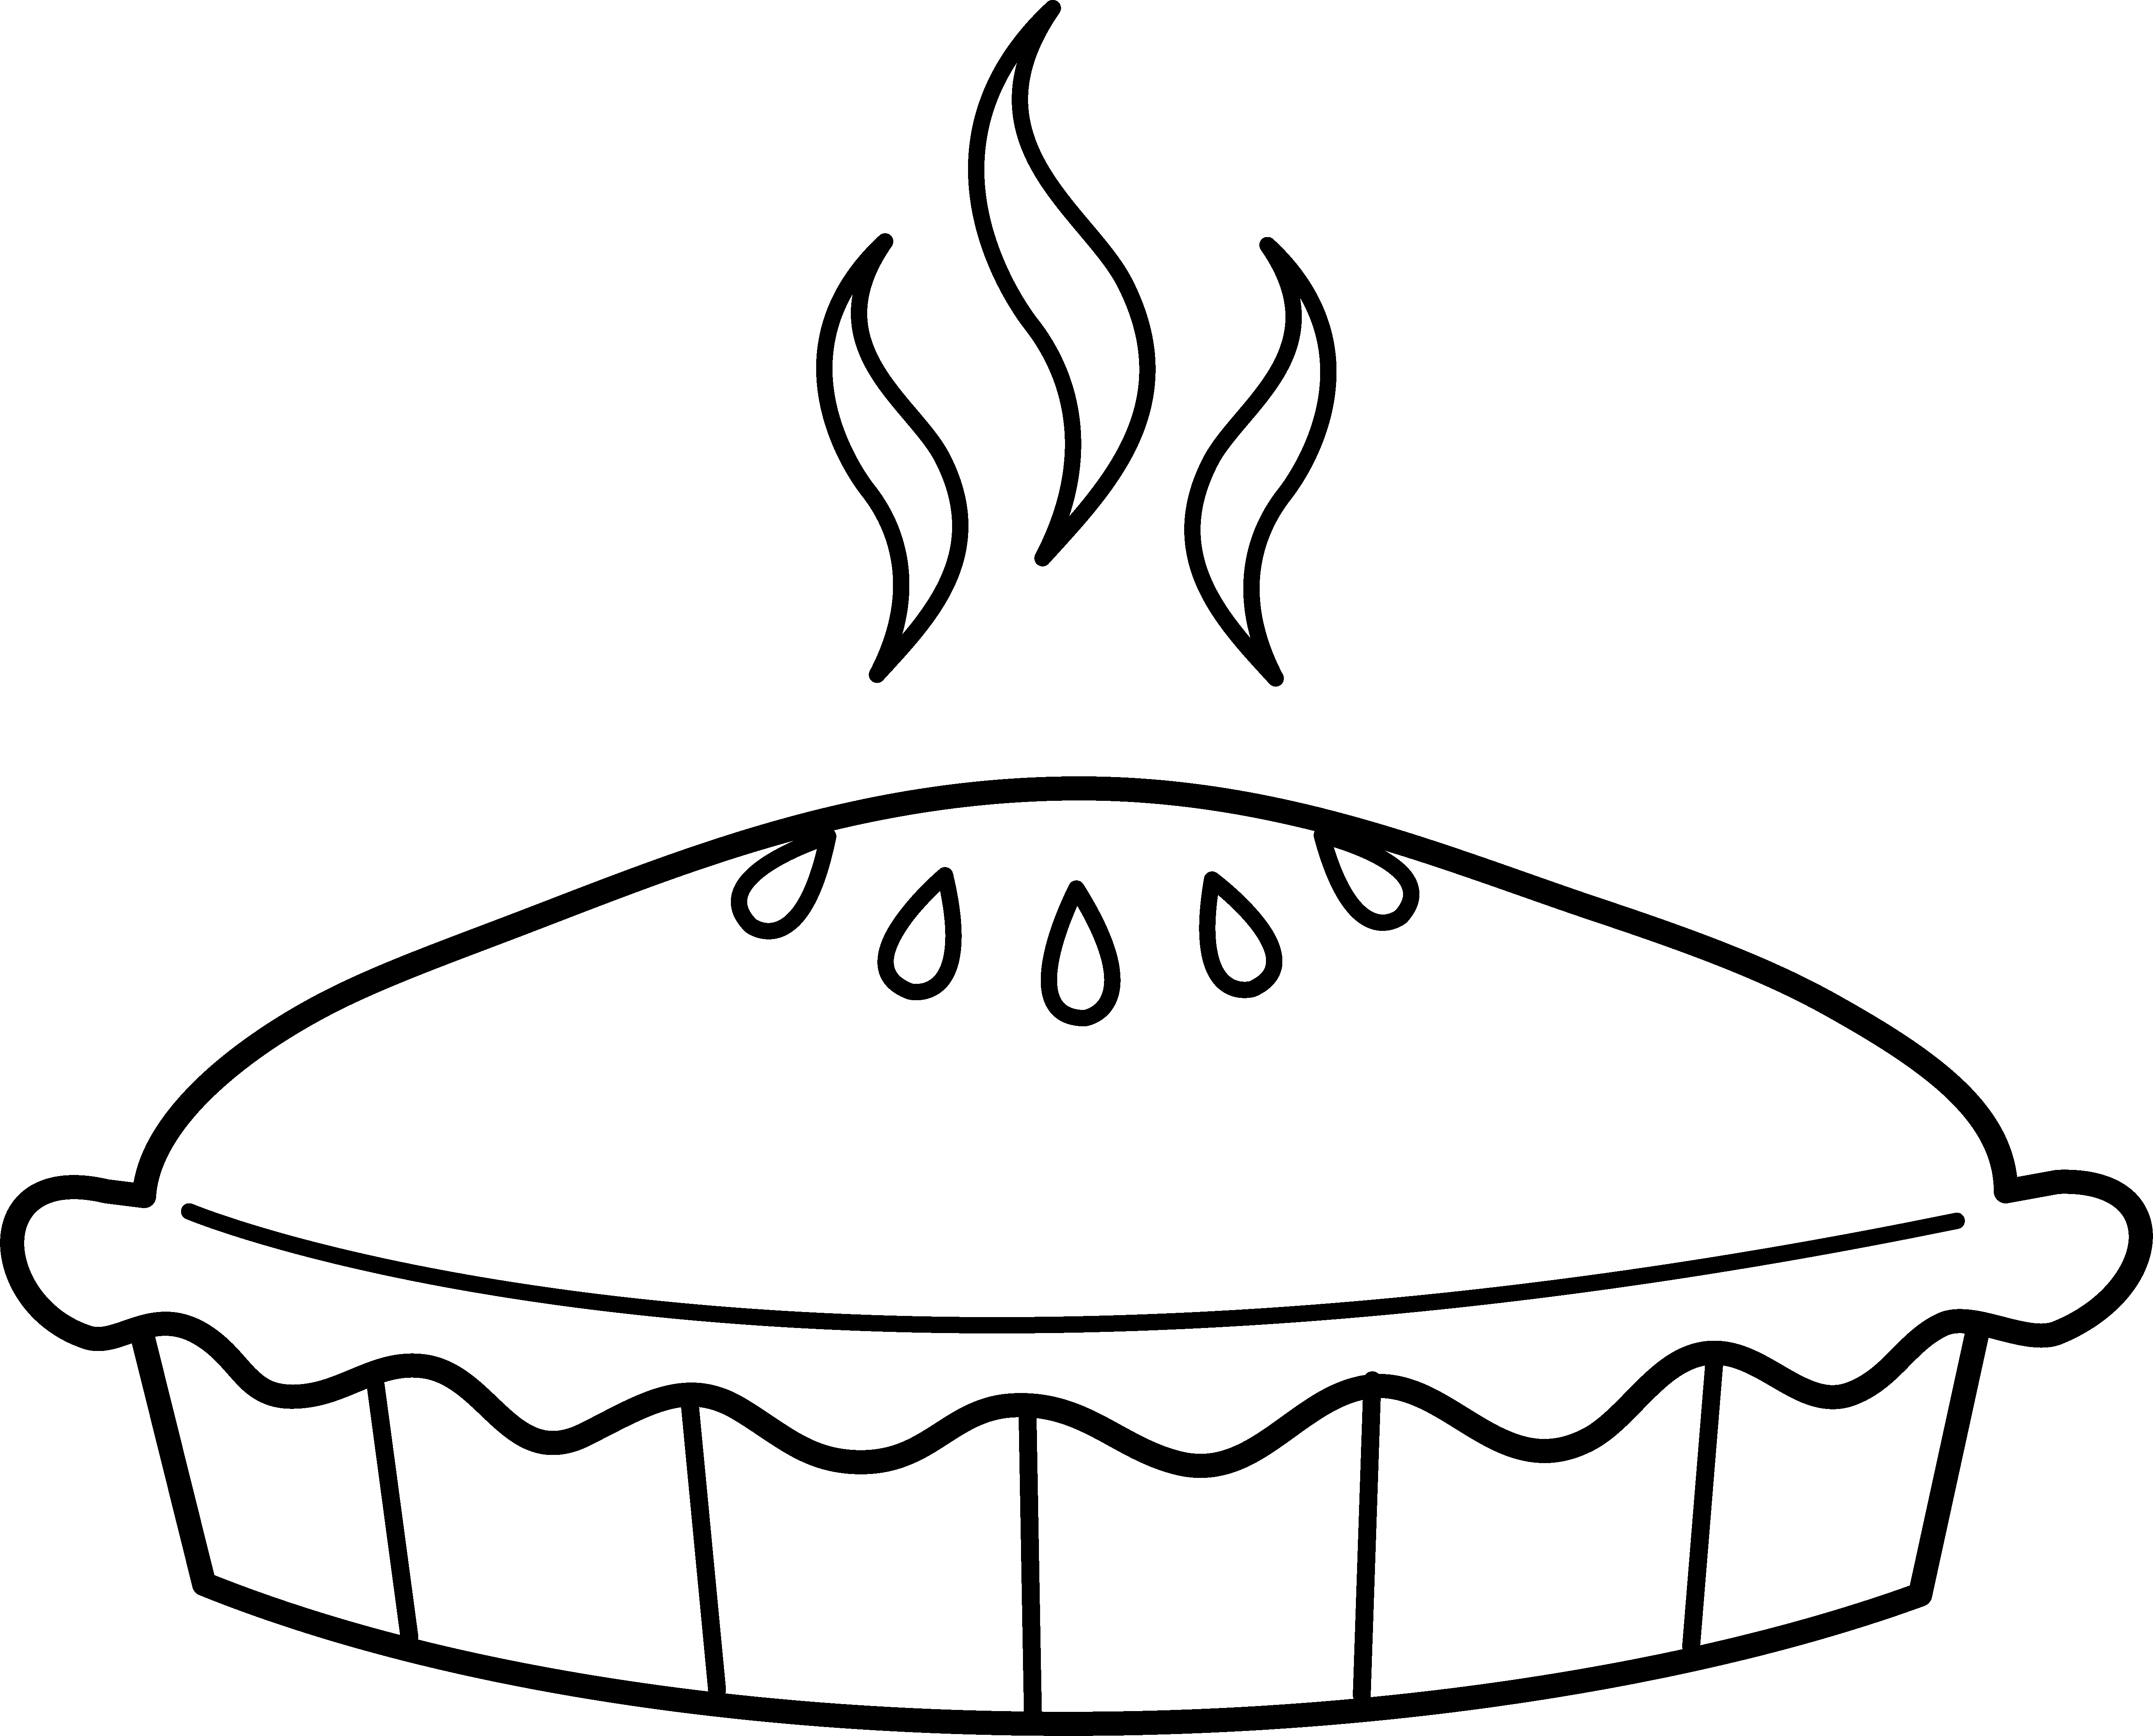 Pie clipart pie crust. Coloring page free clip